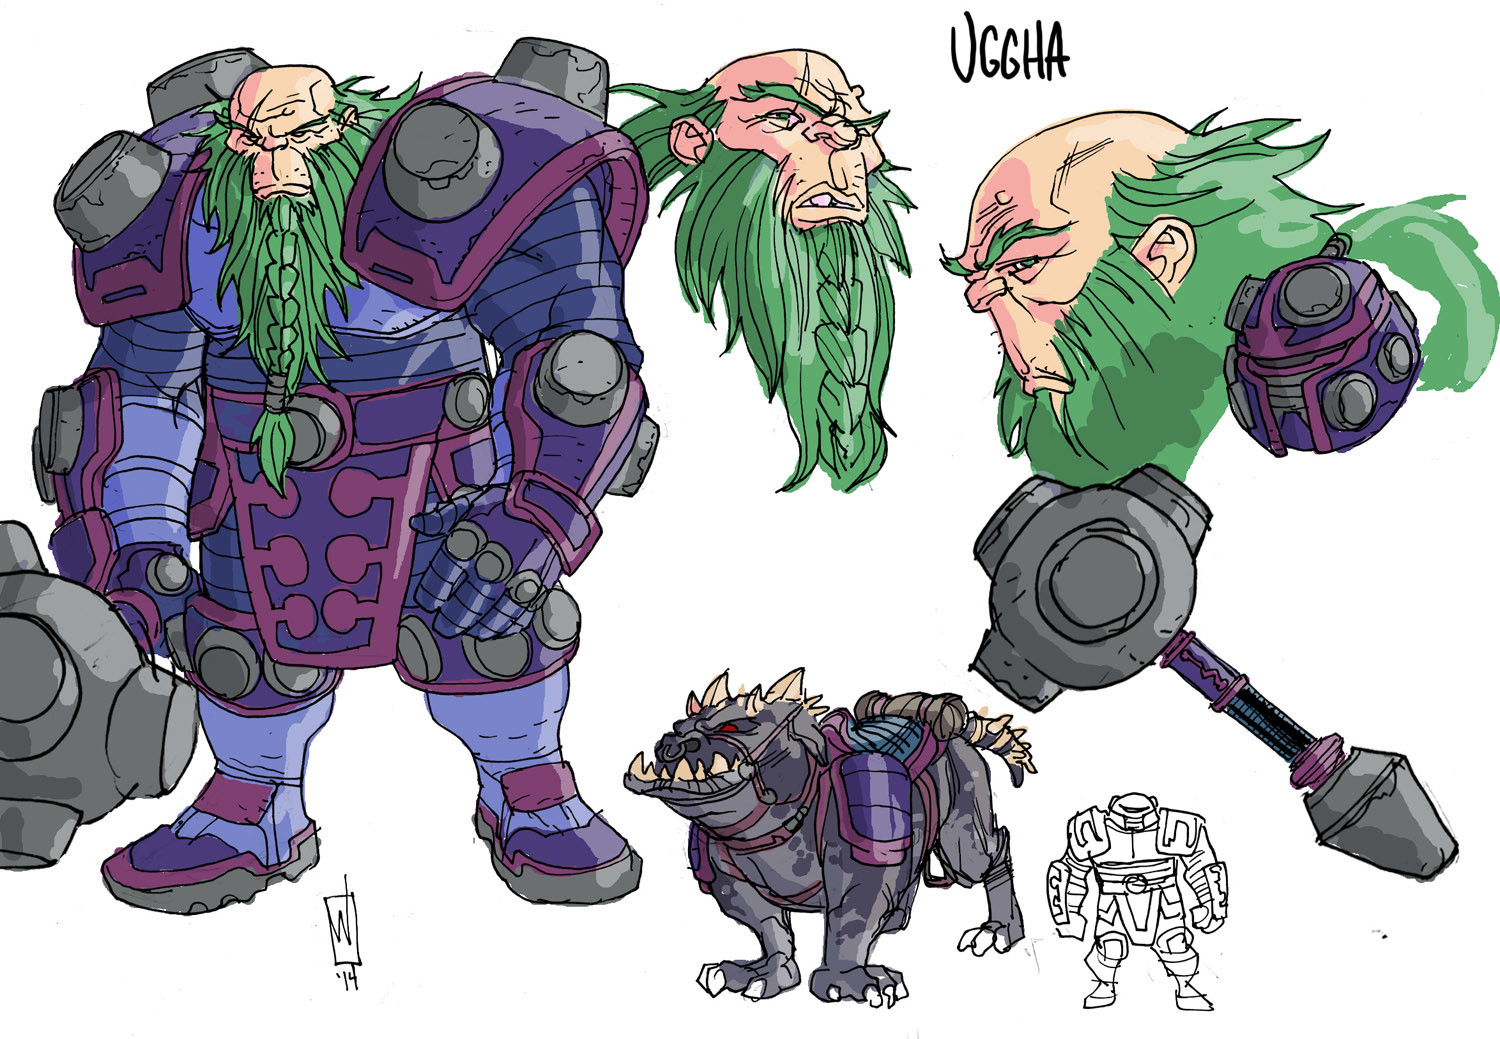 New God design- Uggha. Trying to maintain that Kirby flair. VERY quick turnaround on New God designs. Generally from concept to final design in a matter of hours. That's comics for you.